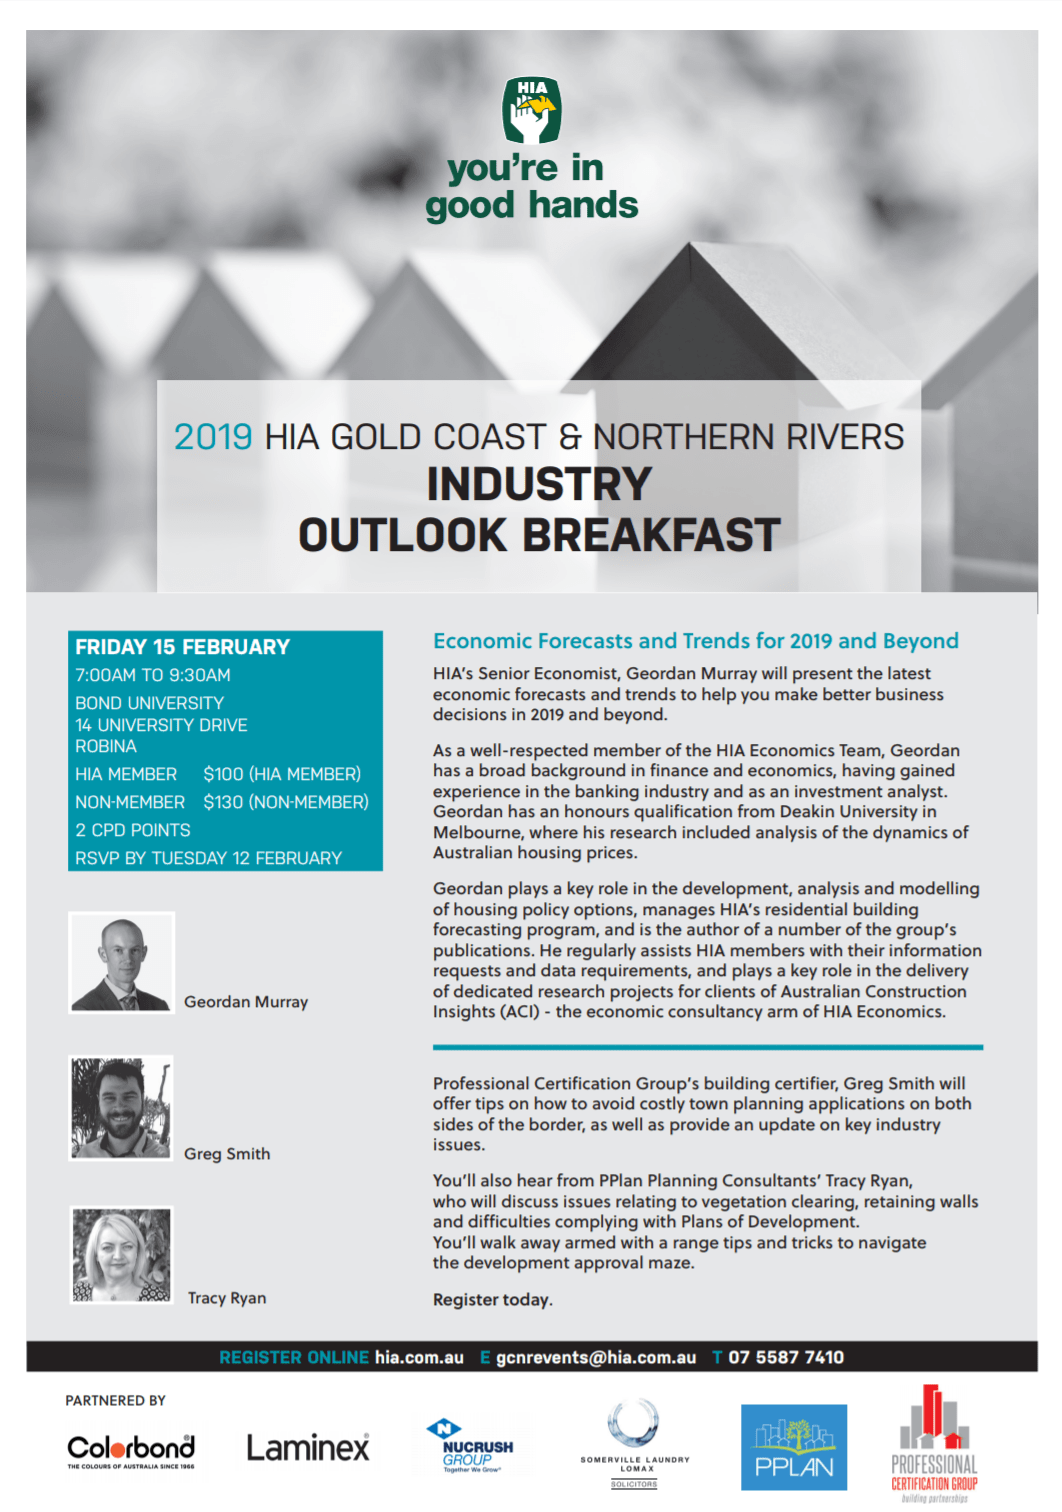 HIA Gold Coast Northern Rivers Industry Outlook Breakfast